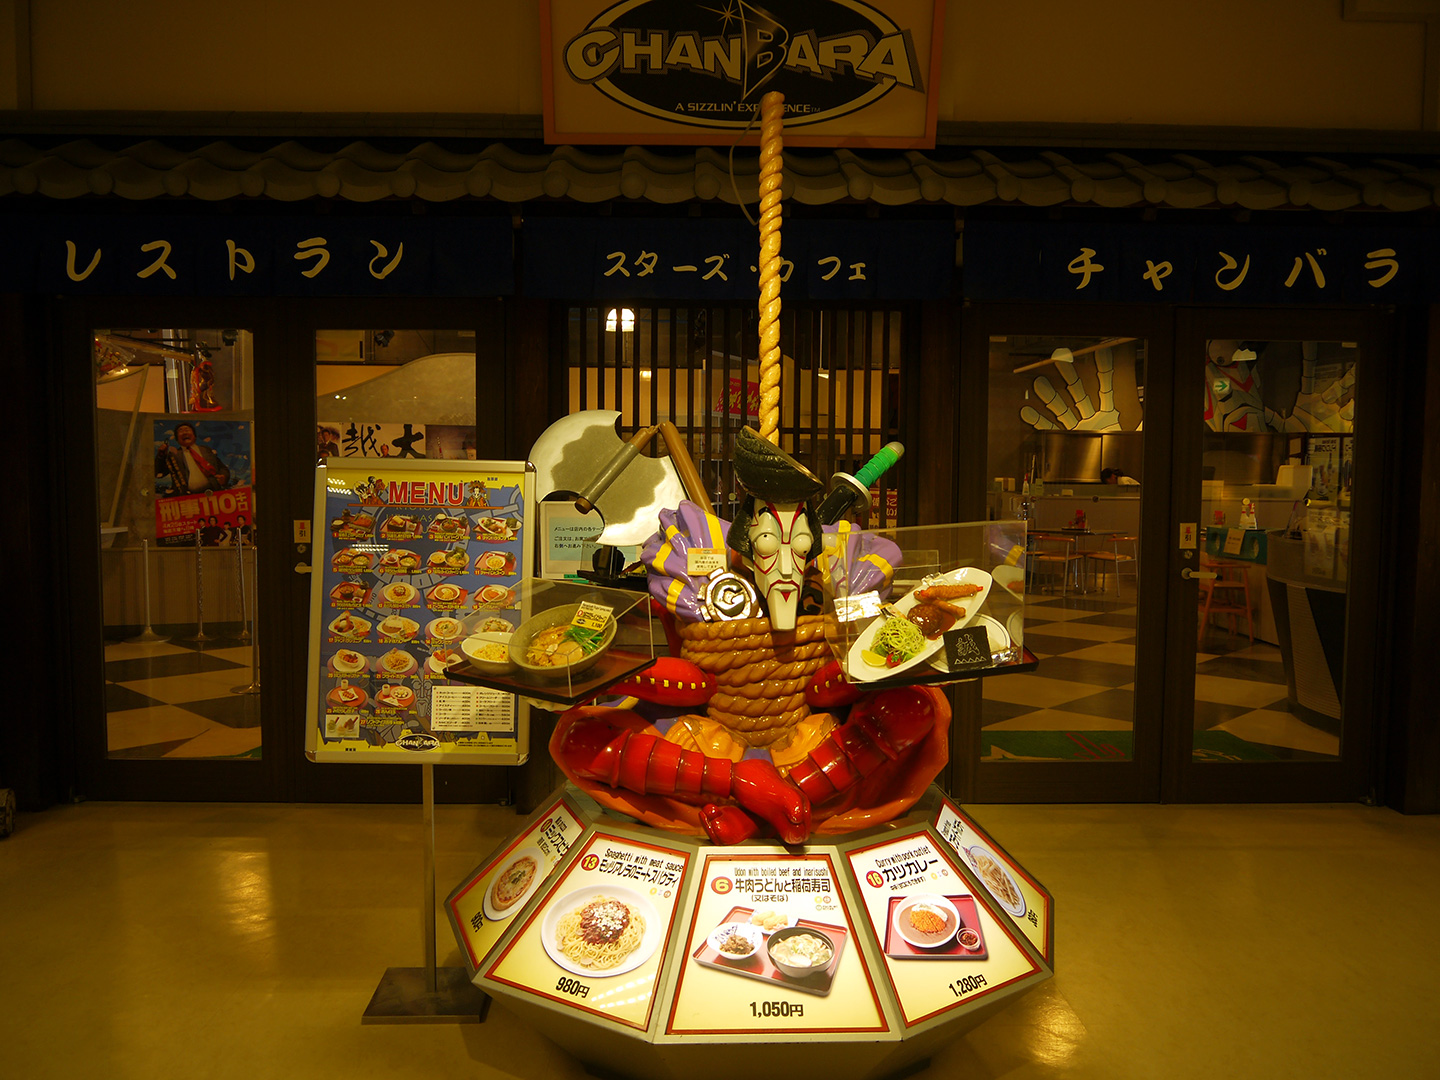 display with free samples in front of restaurant